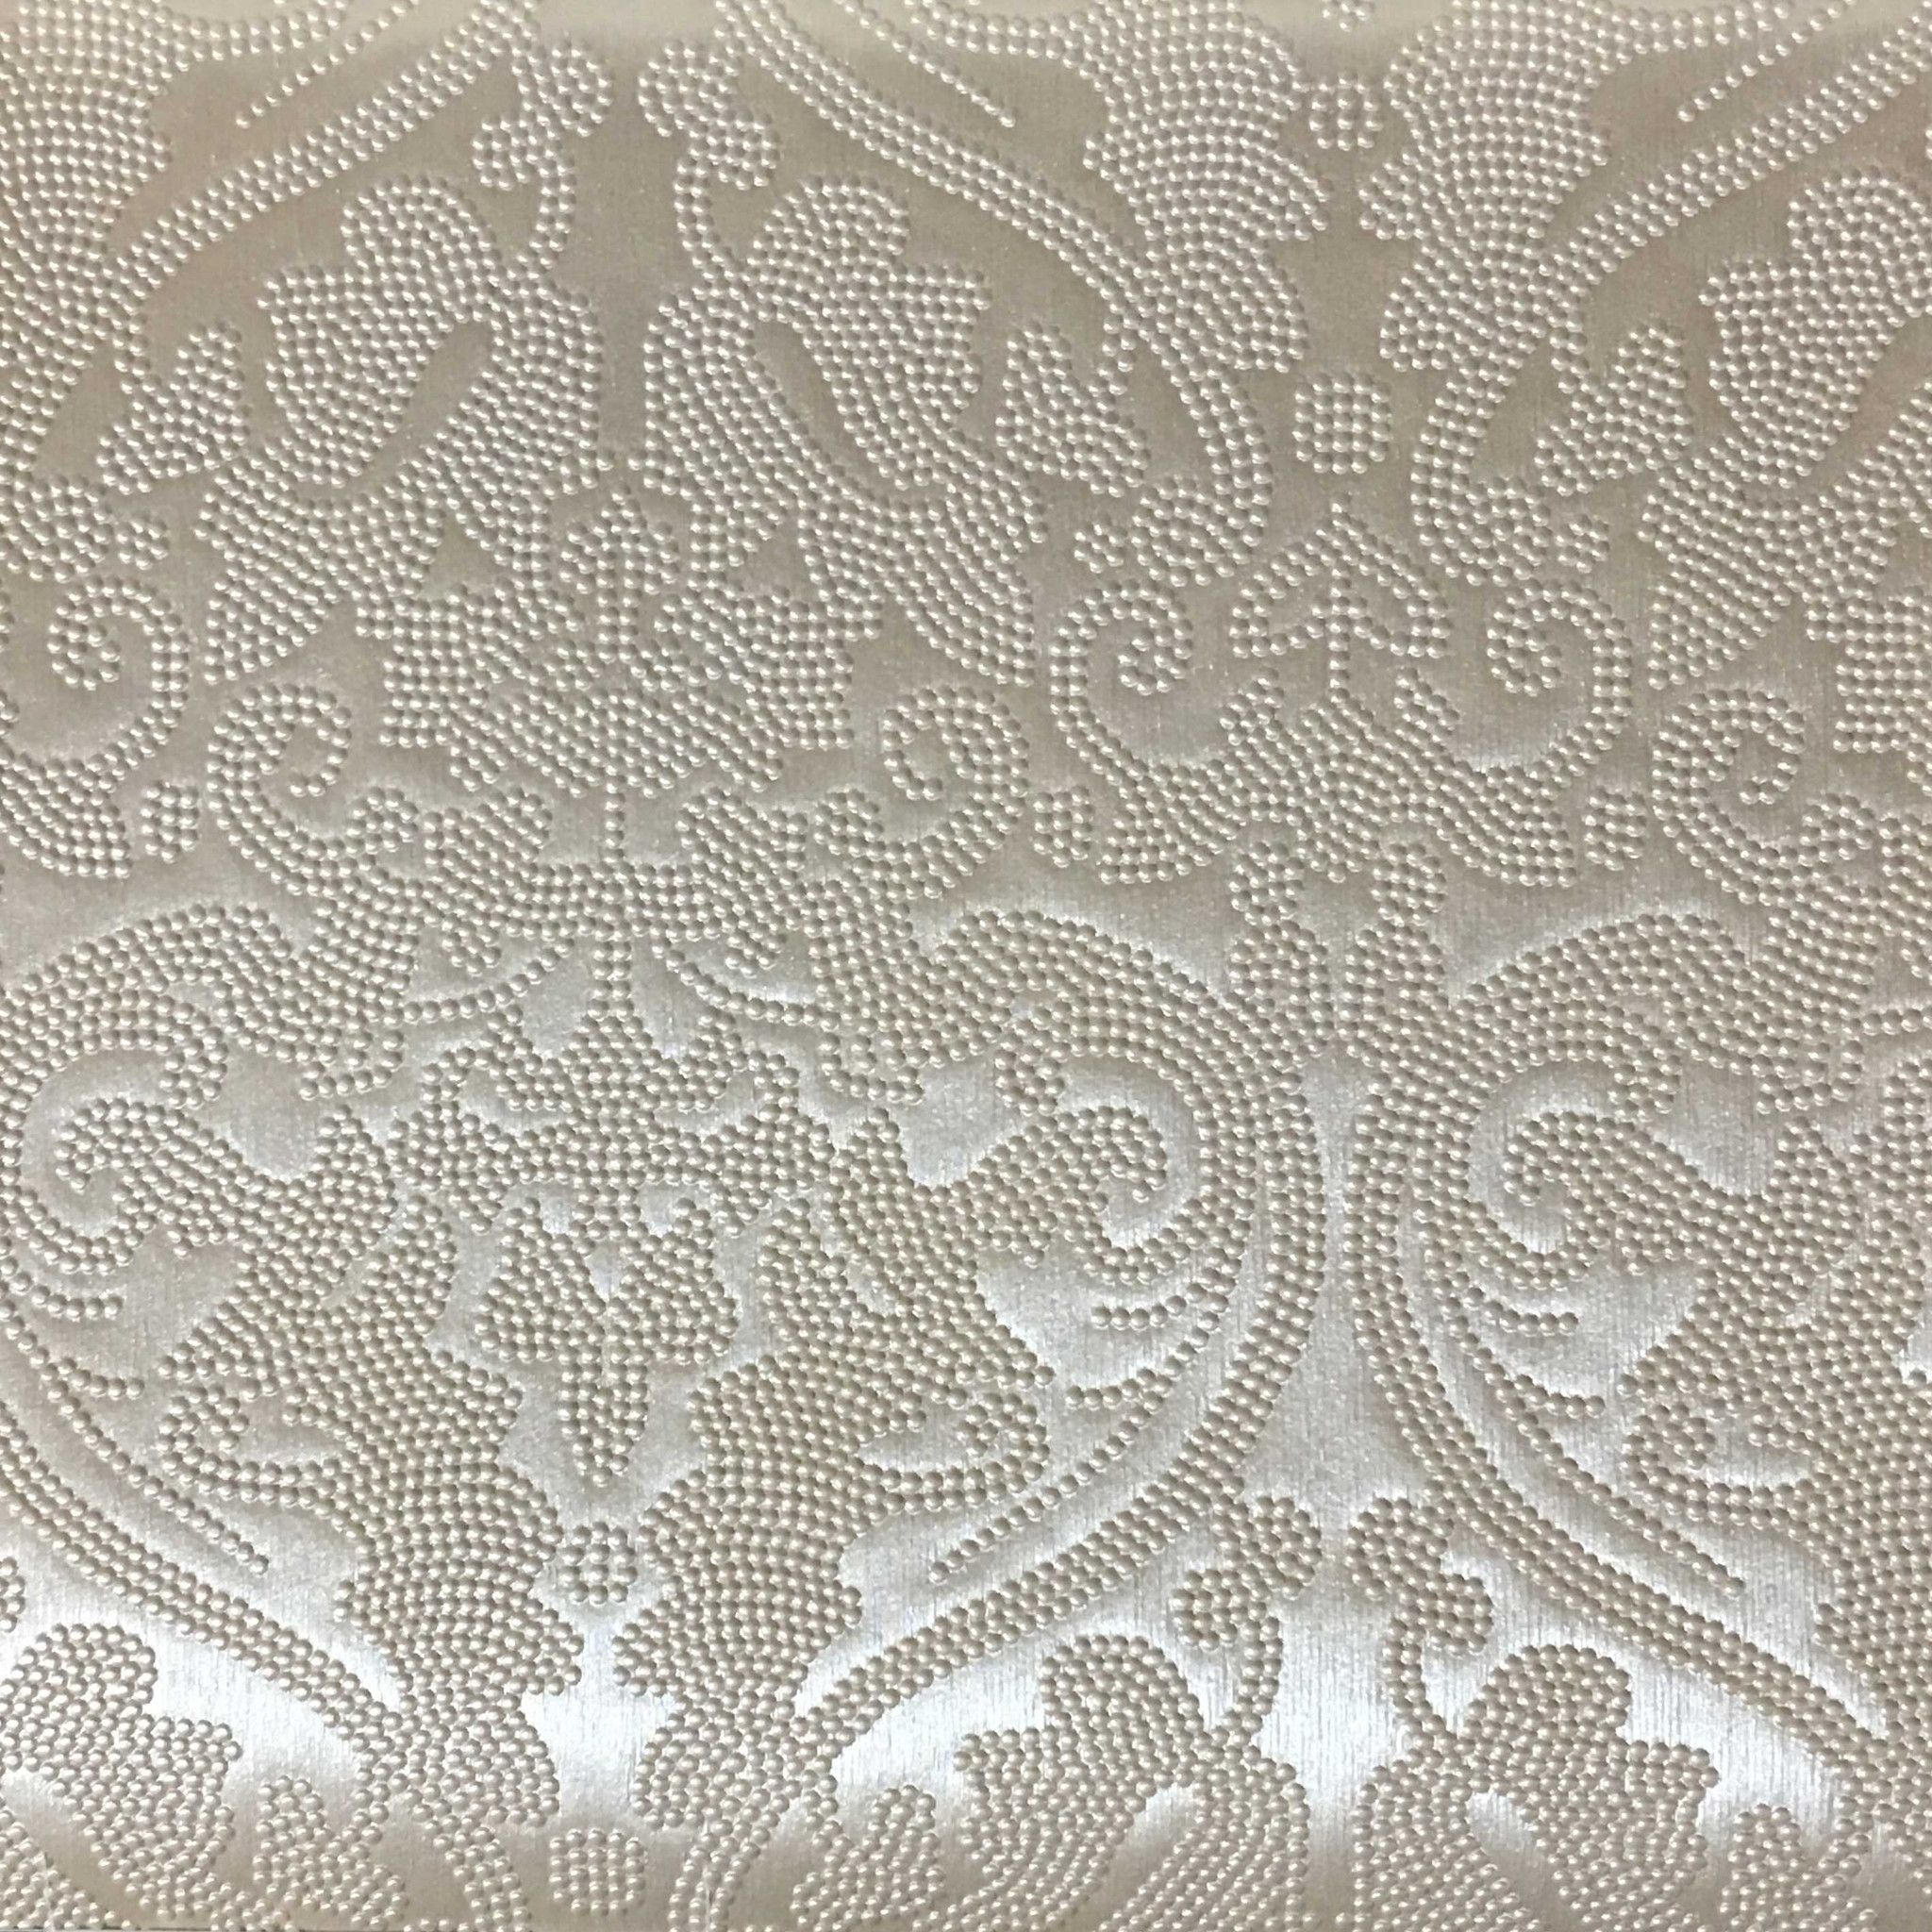 Lyon - Embossed Damask Pattern Vinyl Upholstery Fabric by the Yard ... for upholstery fabric designs patterns  568zmd